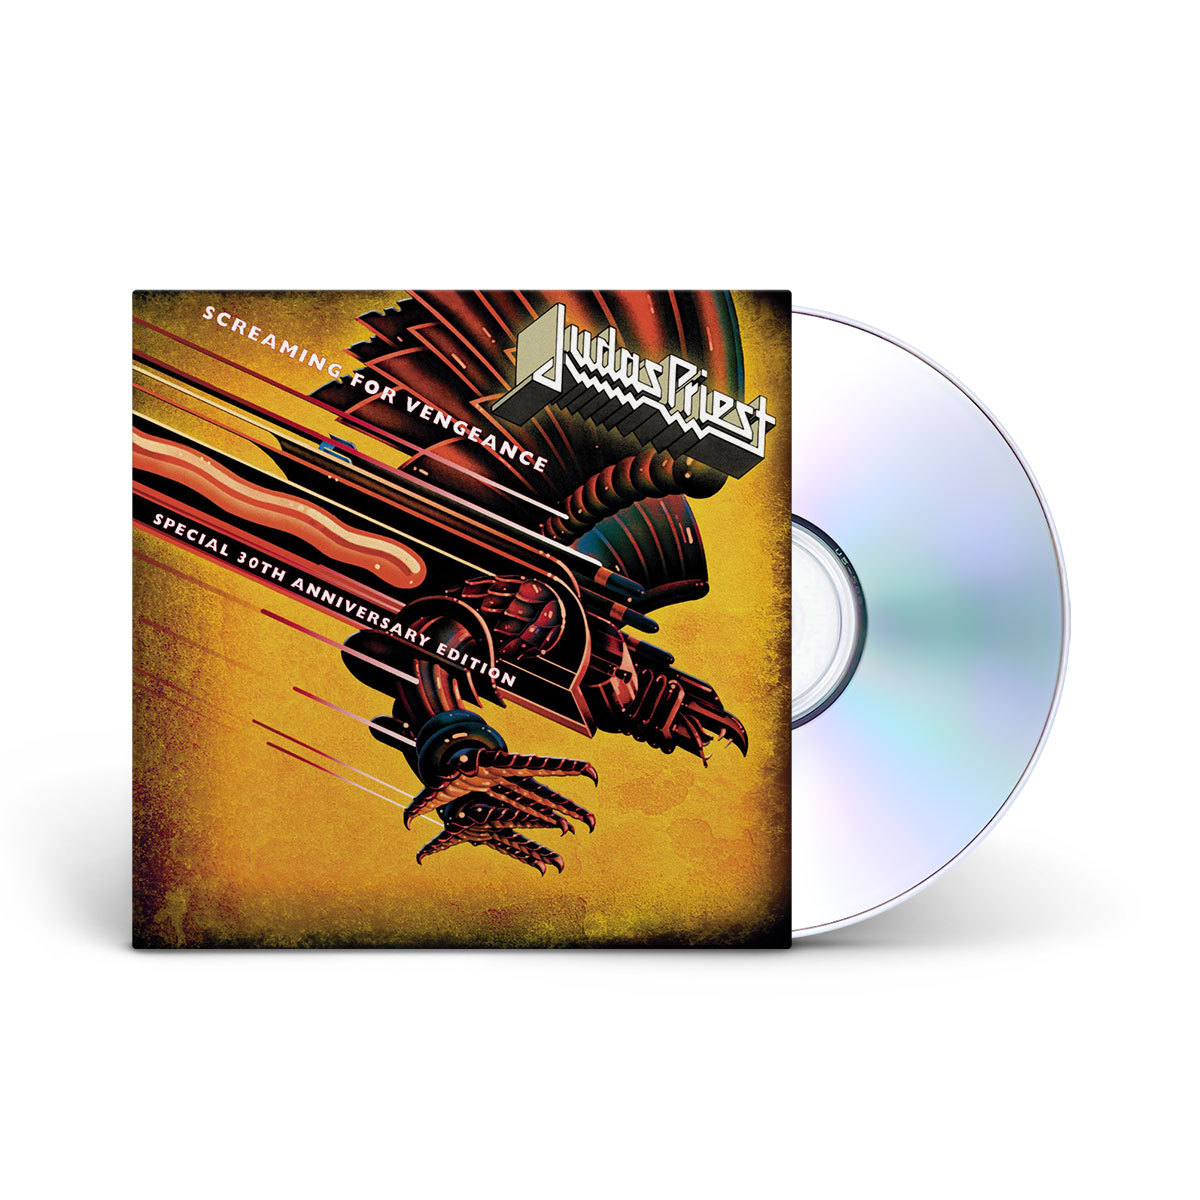 Judas Priest Screaming For Vengeance Special 30th Anniversary Edition CD